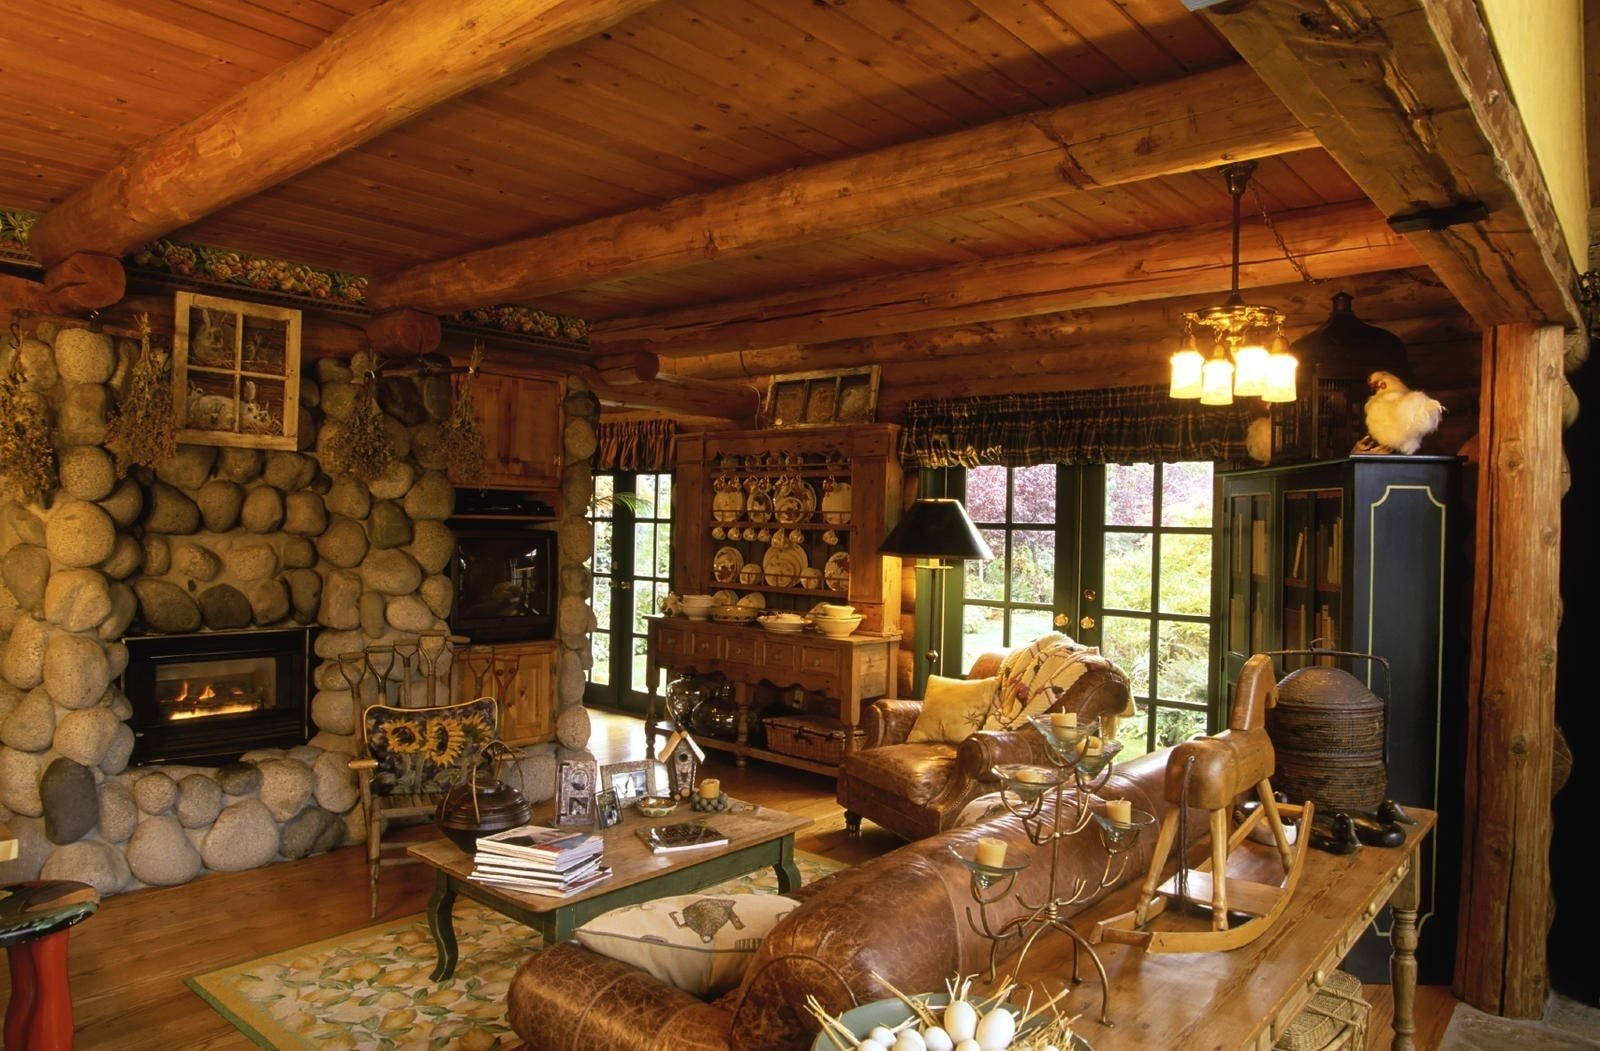 10 Great Log Cabin Decorating Ideas Pictures log cabin decorating ideas pictures utrails home design log 2020